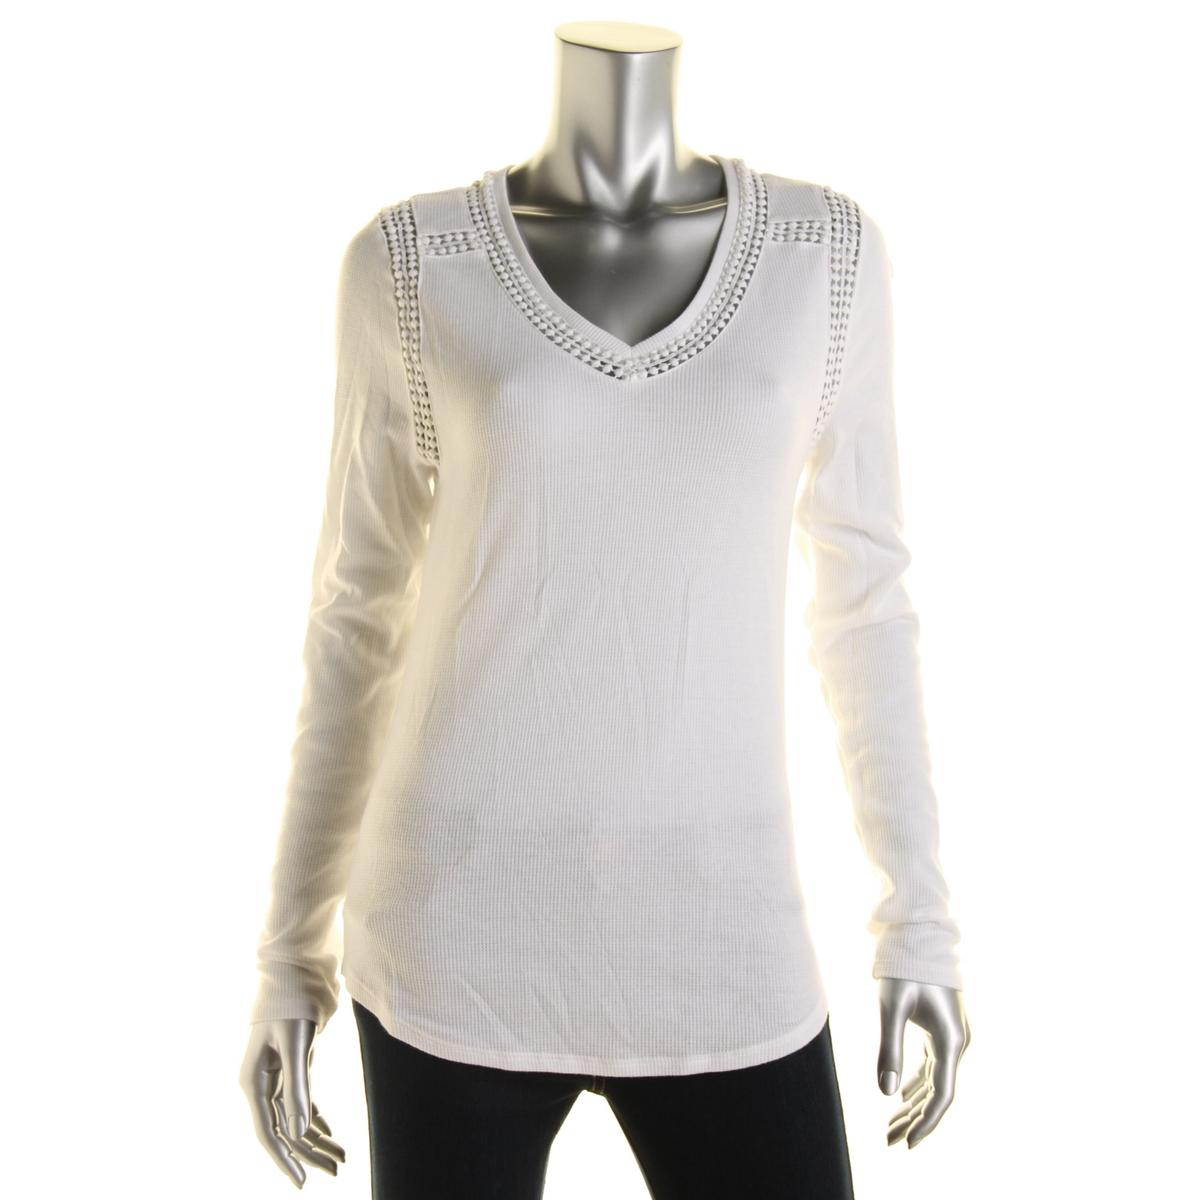 Lucky brand 9368 womens cotton thermal cut out t shirt top for Thermal shirt for women